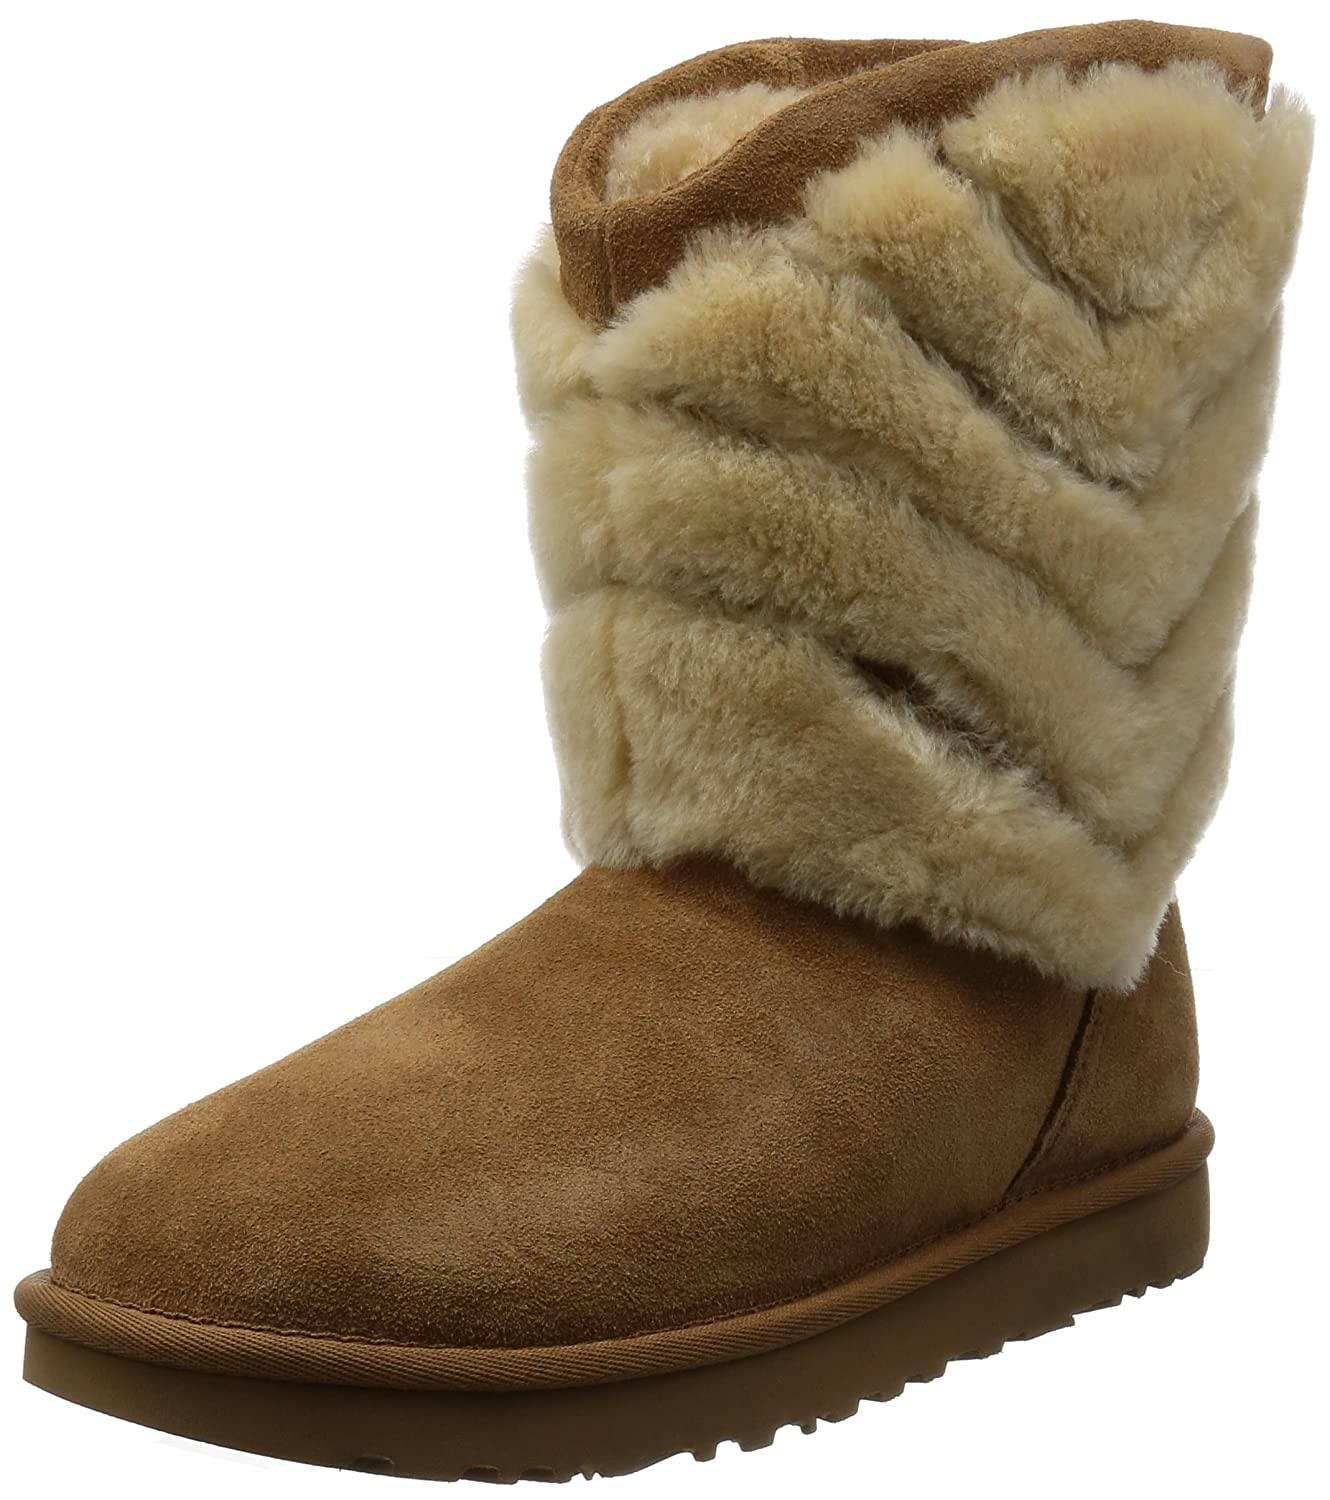 b49ea3cd8d2 UGG Tania (UK 8, Chestnut): Amazon.co.uk: Shoes & Bags